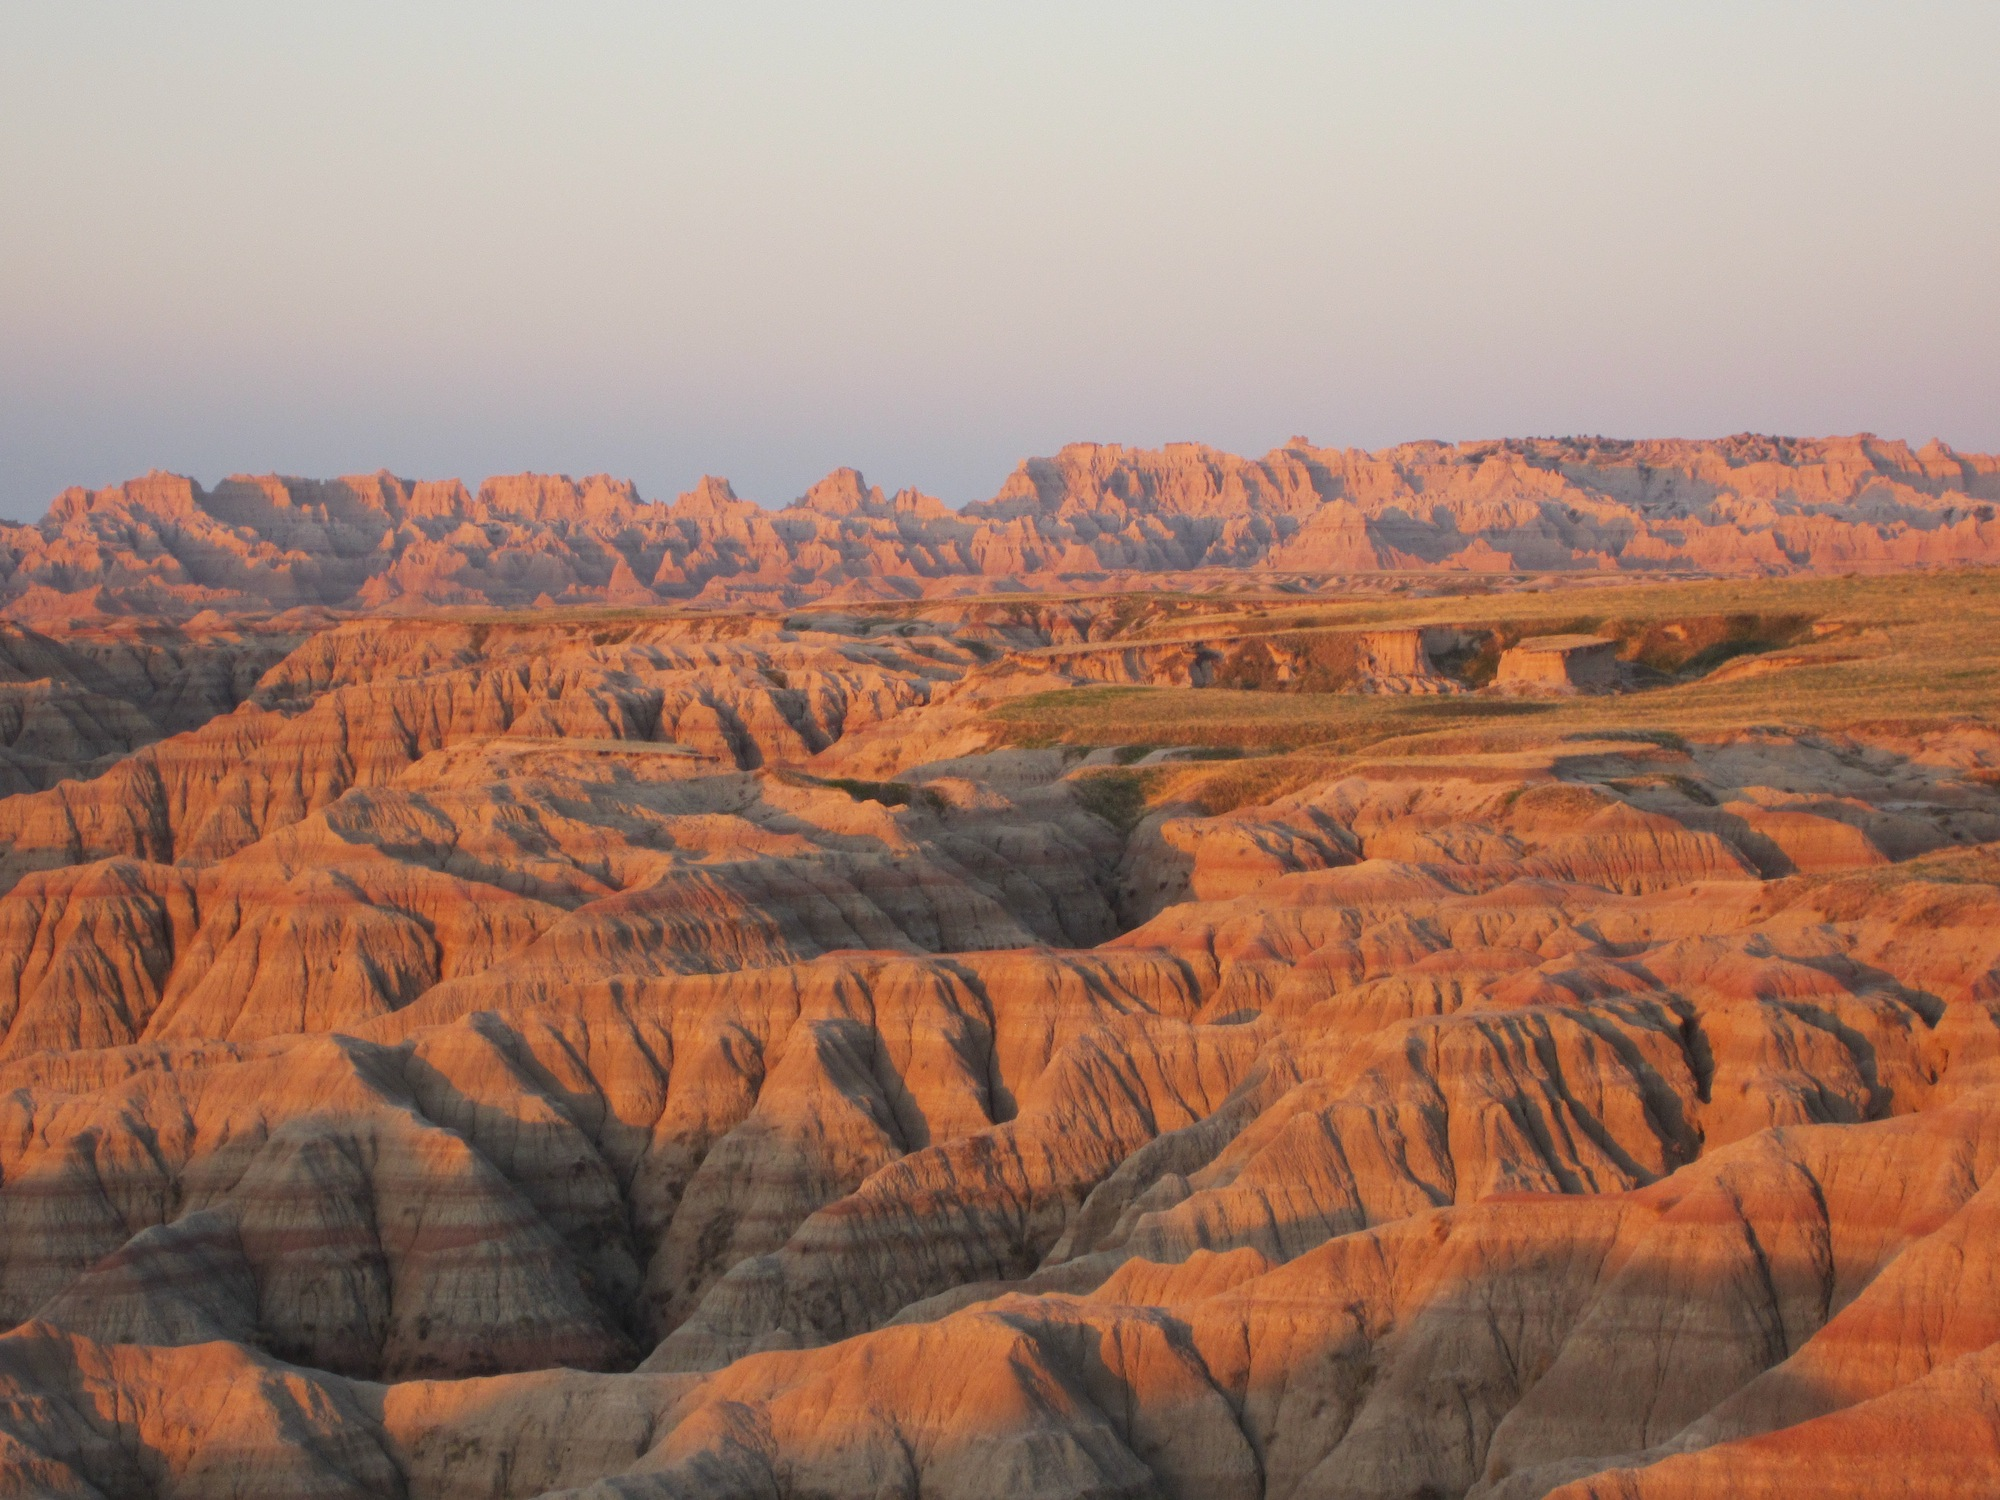 Badlands National Park credit: sophia dembling